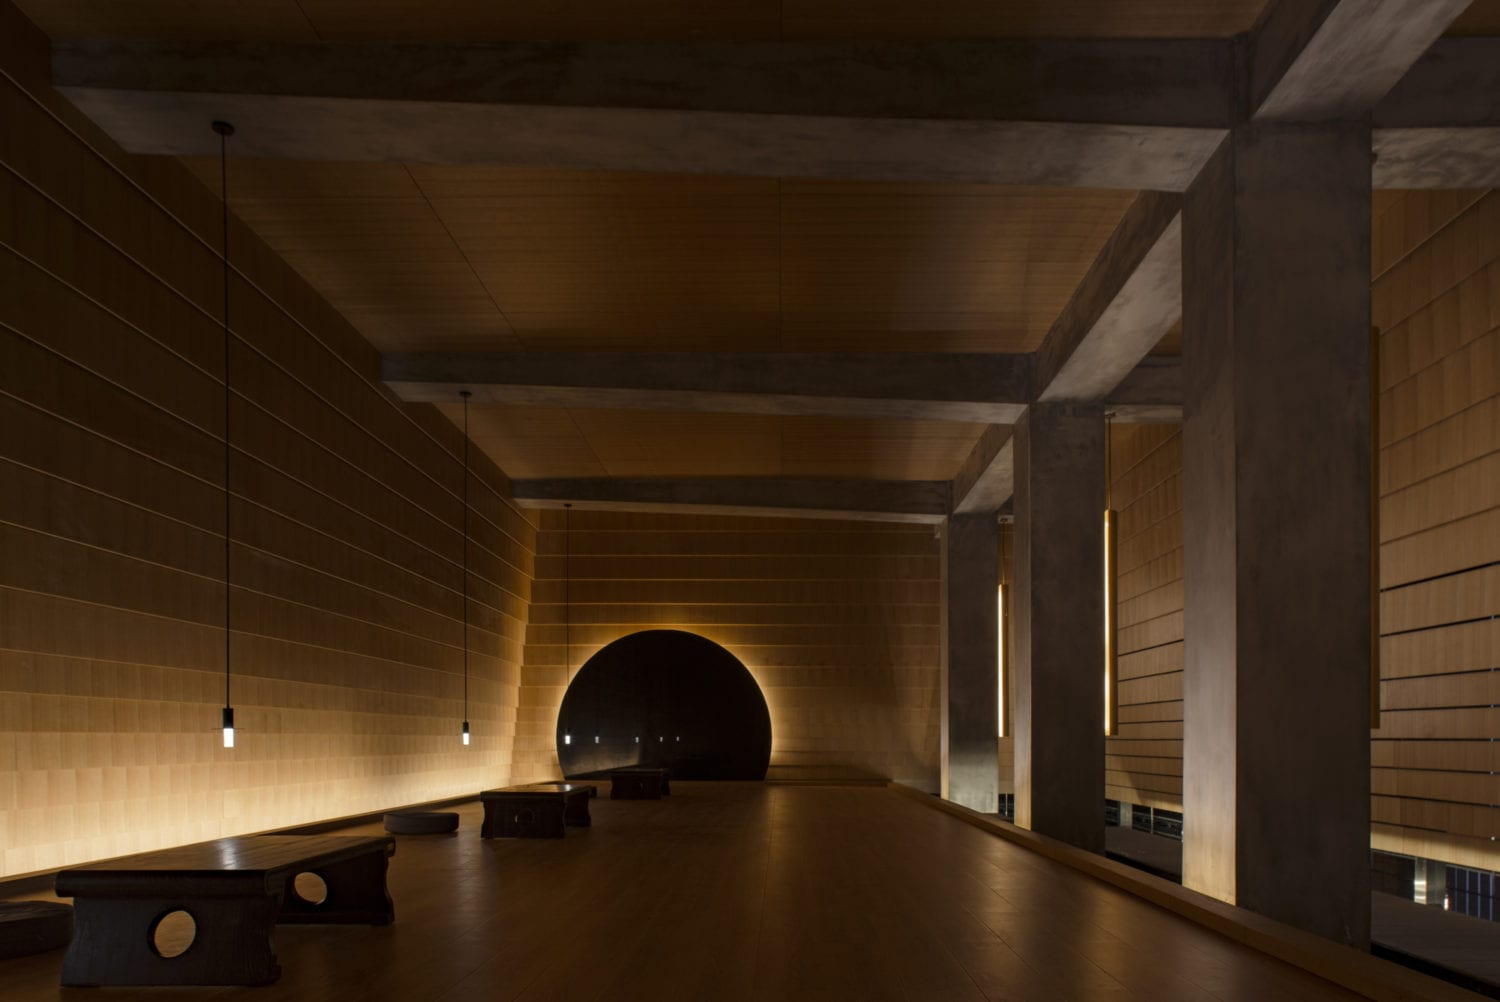 Meditation Hall In Huanghua China By Hil Architects | Yellowtrace